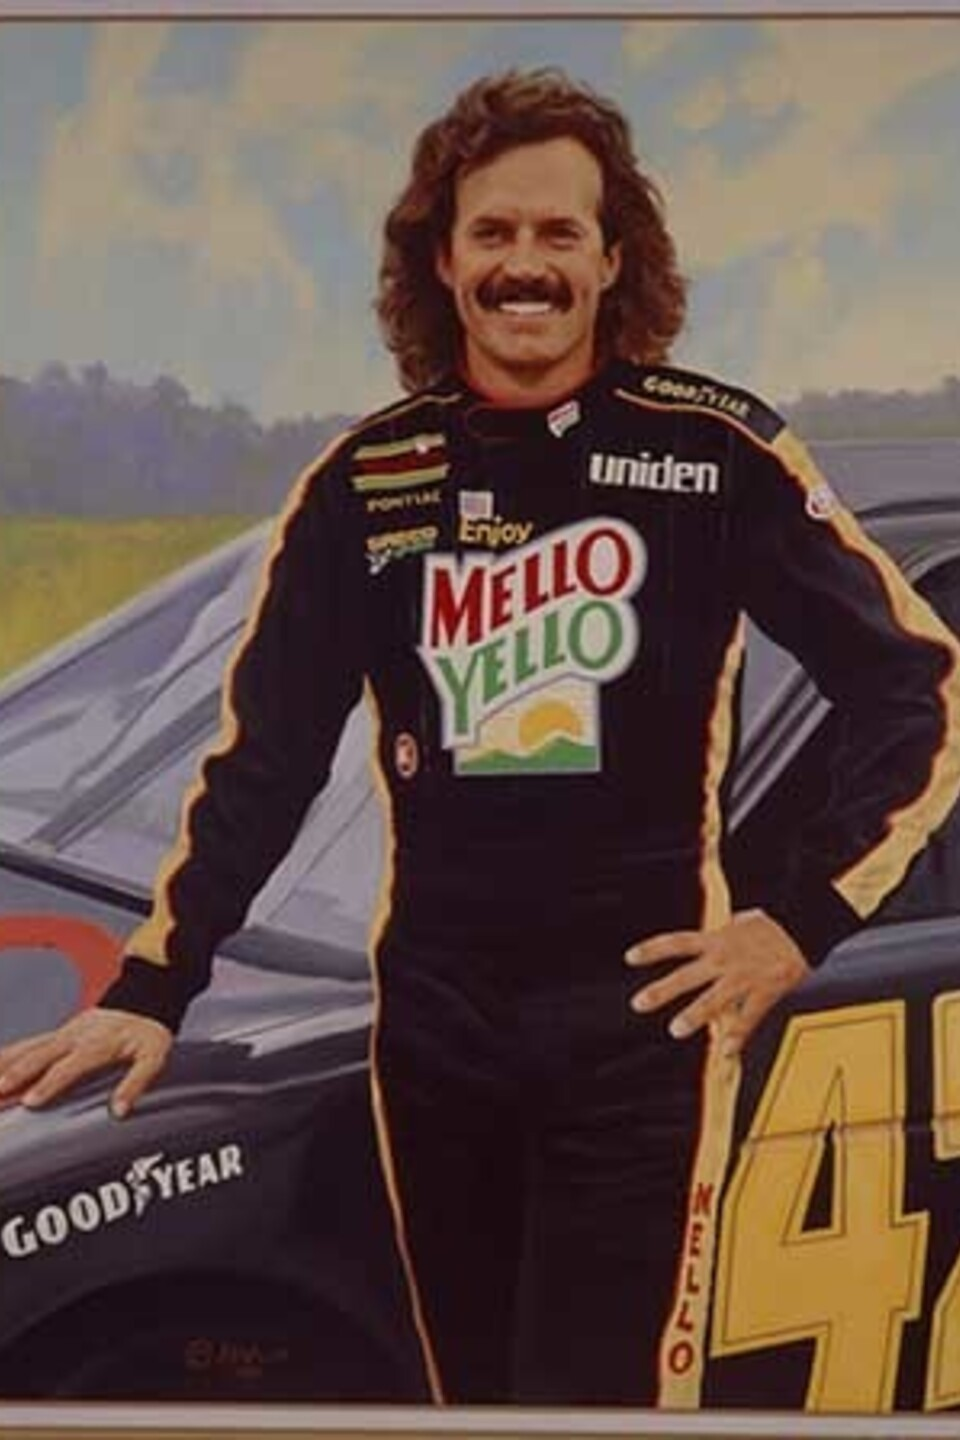 Kyle petty   portrait20170808 21030 13lu3t1